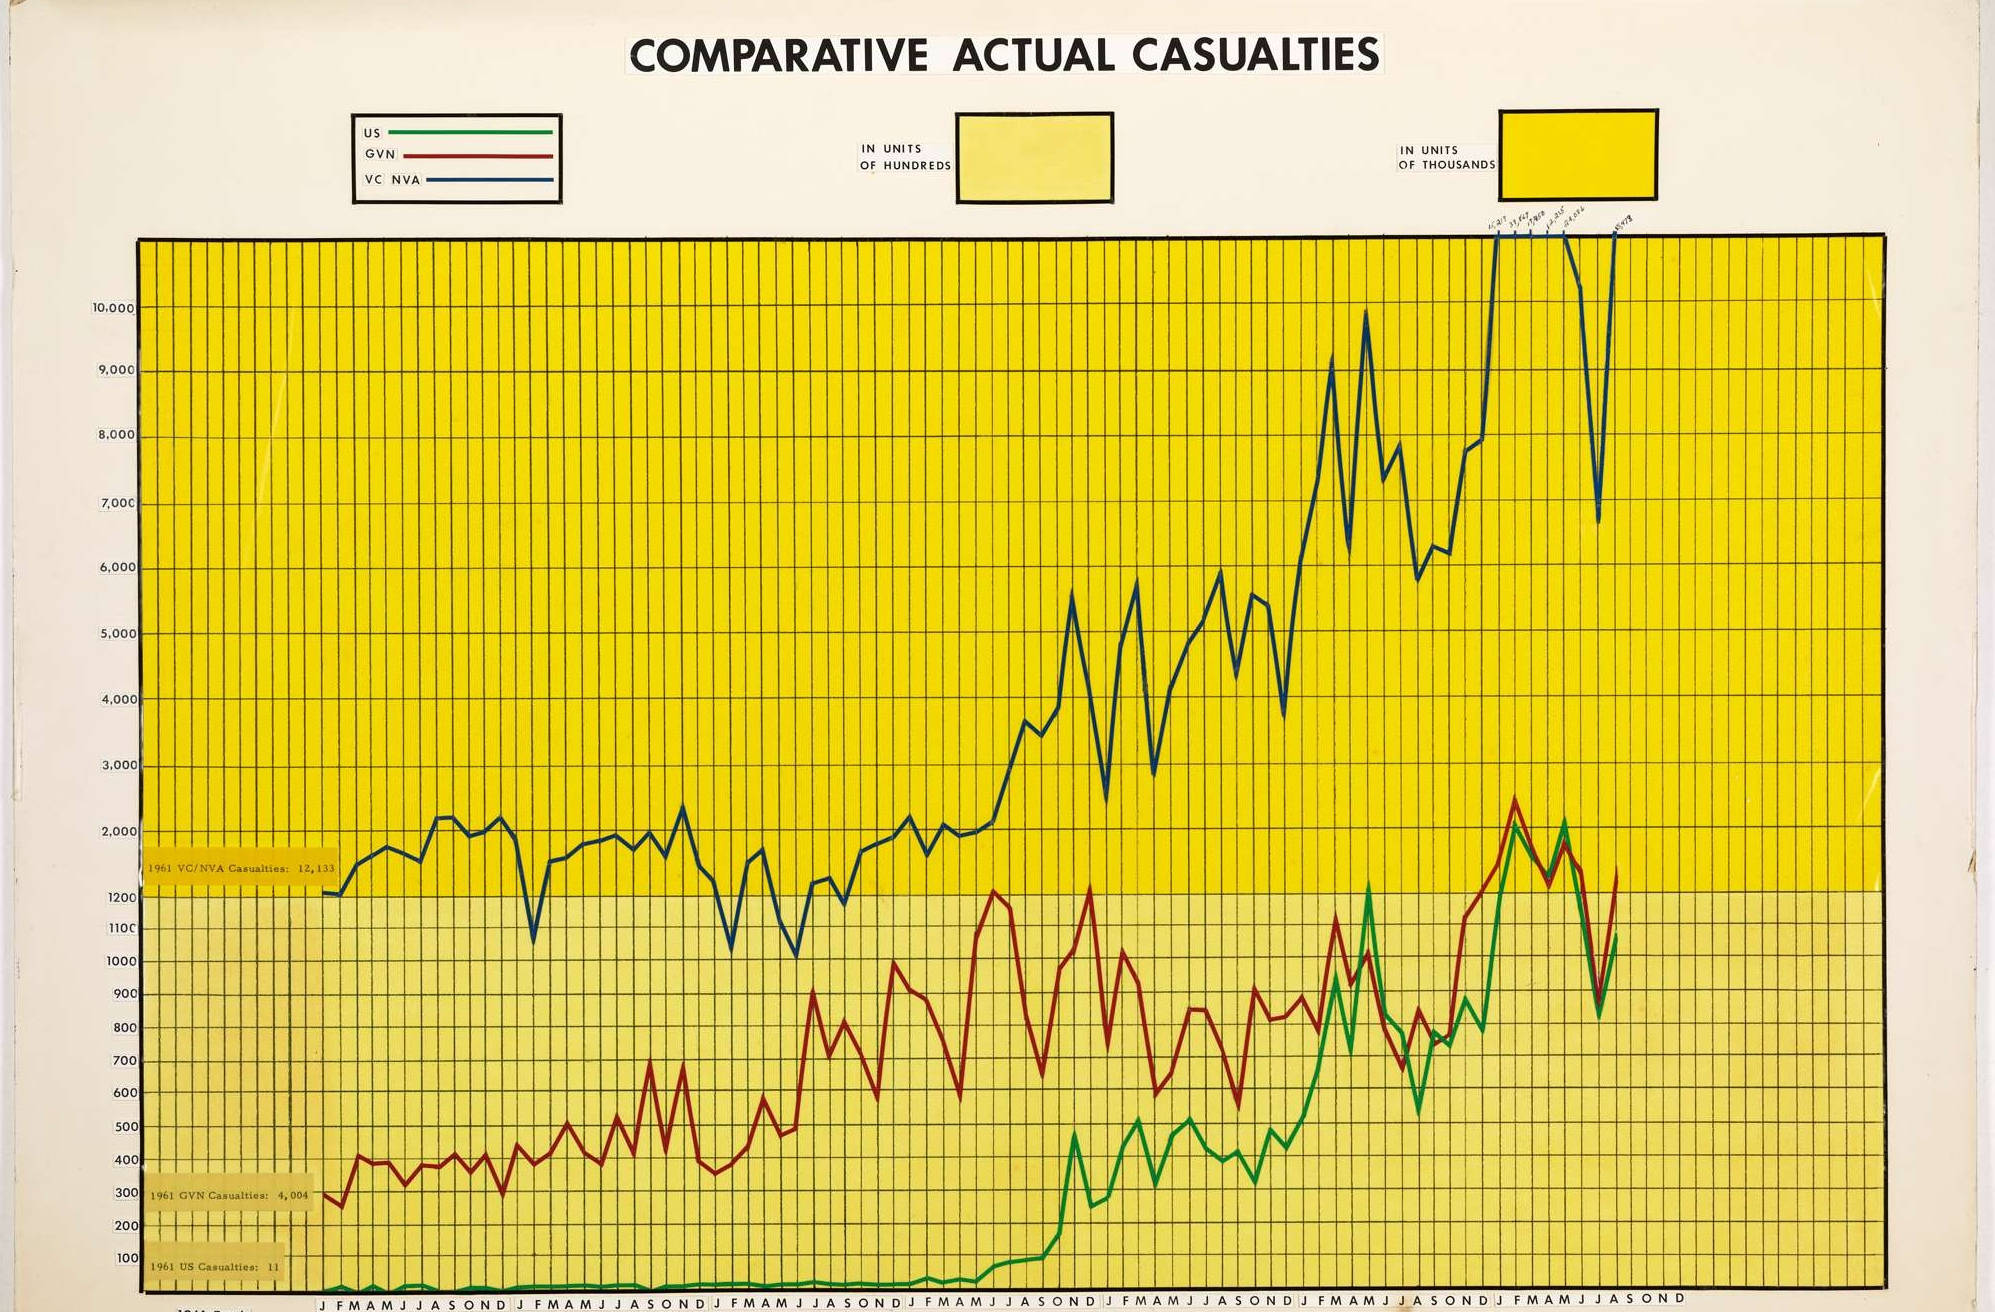 Graph of Comparitive Actual Casualties